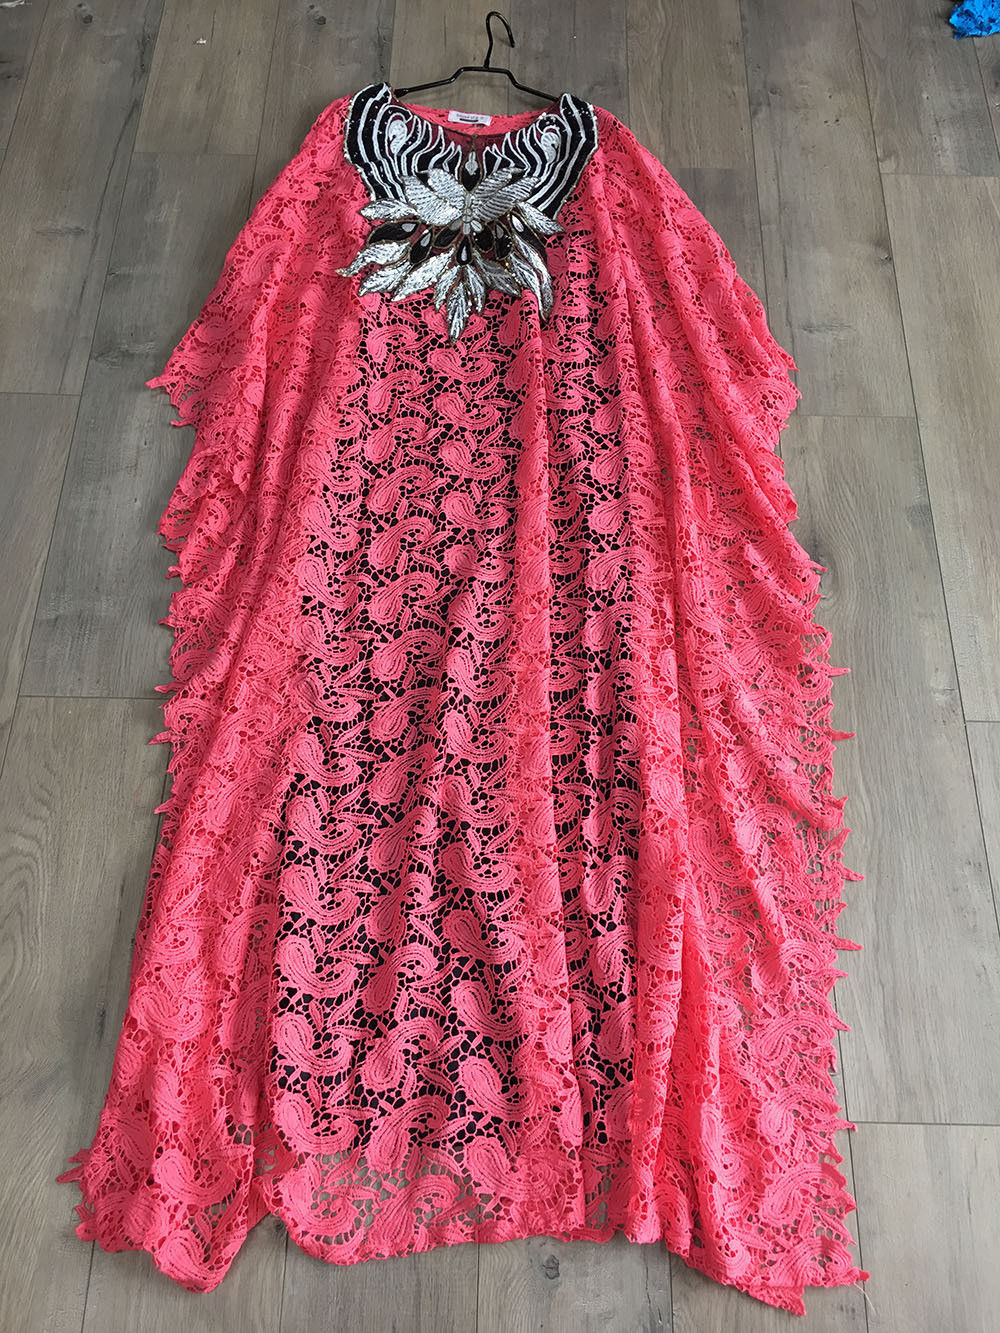 African Dresses for Women Dashiki Lace African Clothes Bazin Broder Riche Sexy Embroidery Sequins Robe Evening Long Dress 2020 12